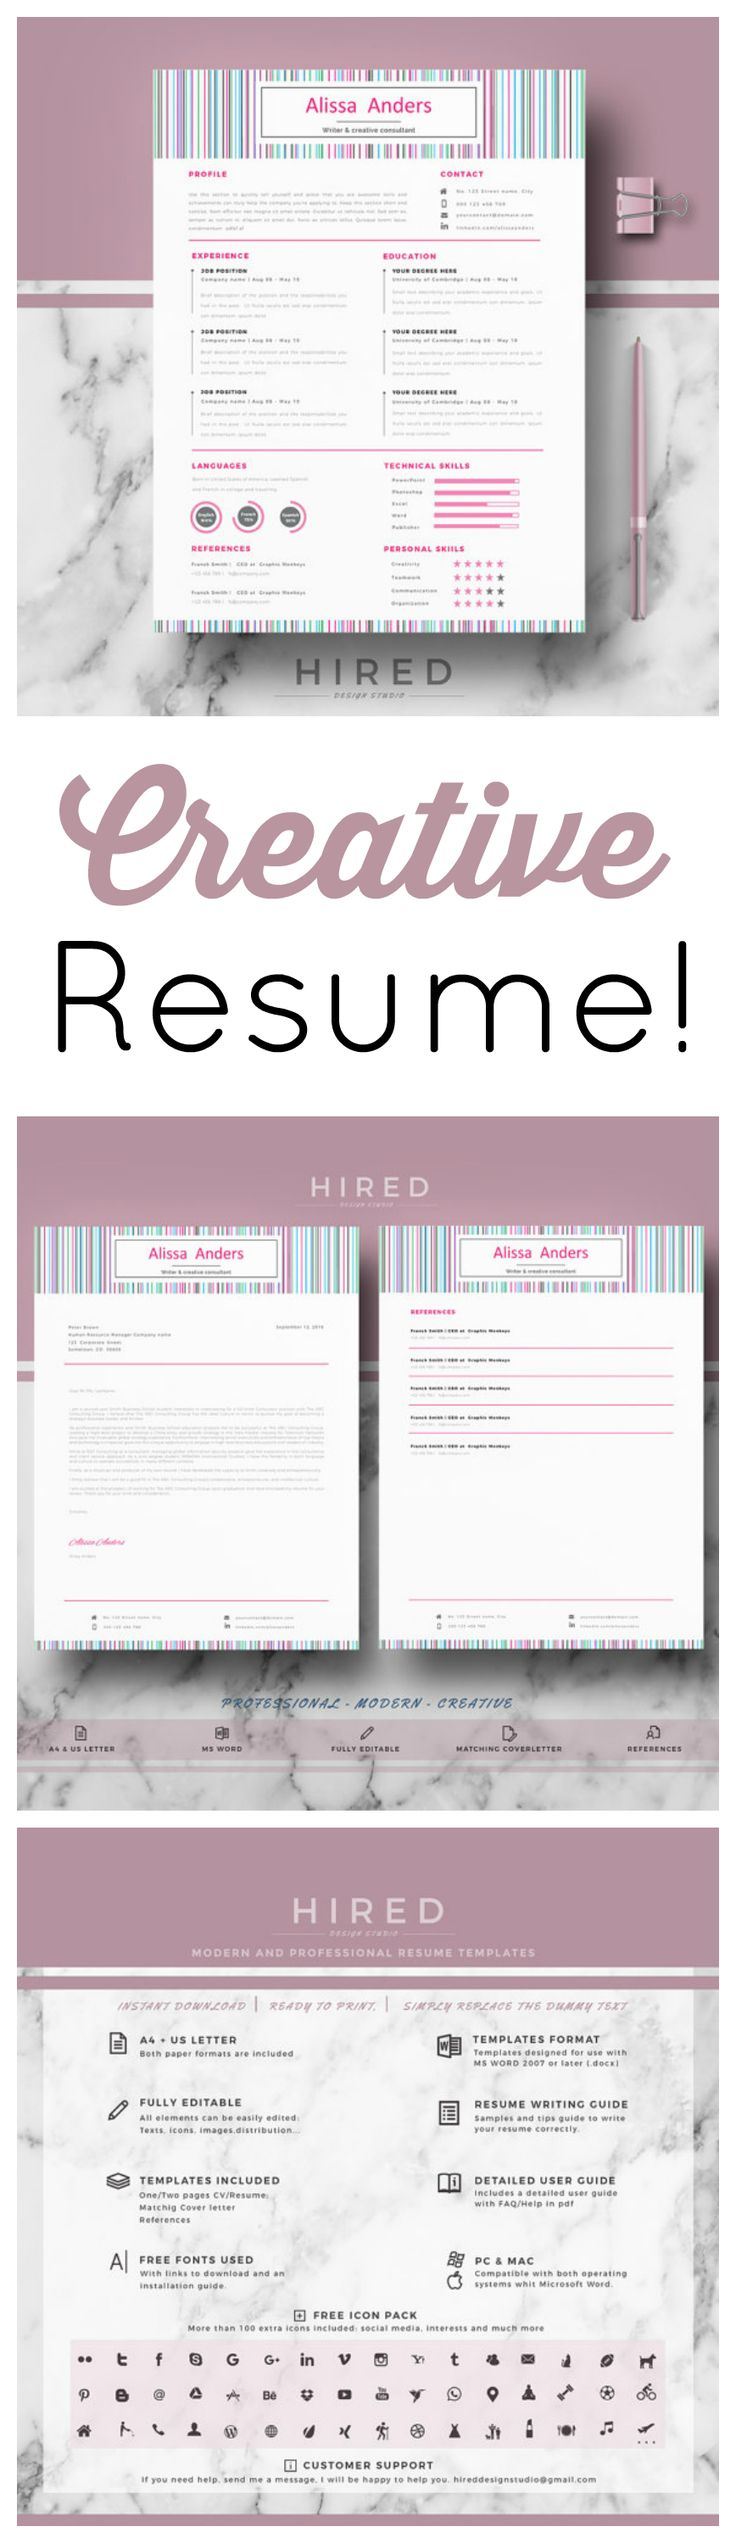 Love this creative resume!! And love that there is a resume writing guide where you can find lots of tips and examples to write your best resume. Also you will find tips to successfully face your job interview! #resume #career #jobhunting #interview #ad #CV #resumetemplate #cvtemplate #coverletter